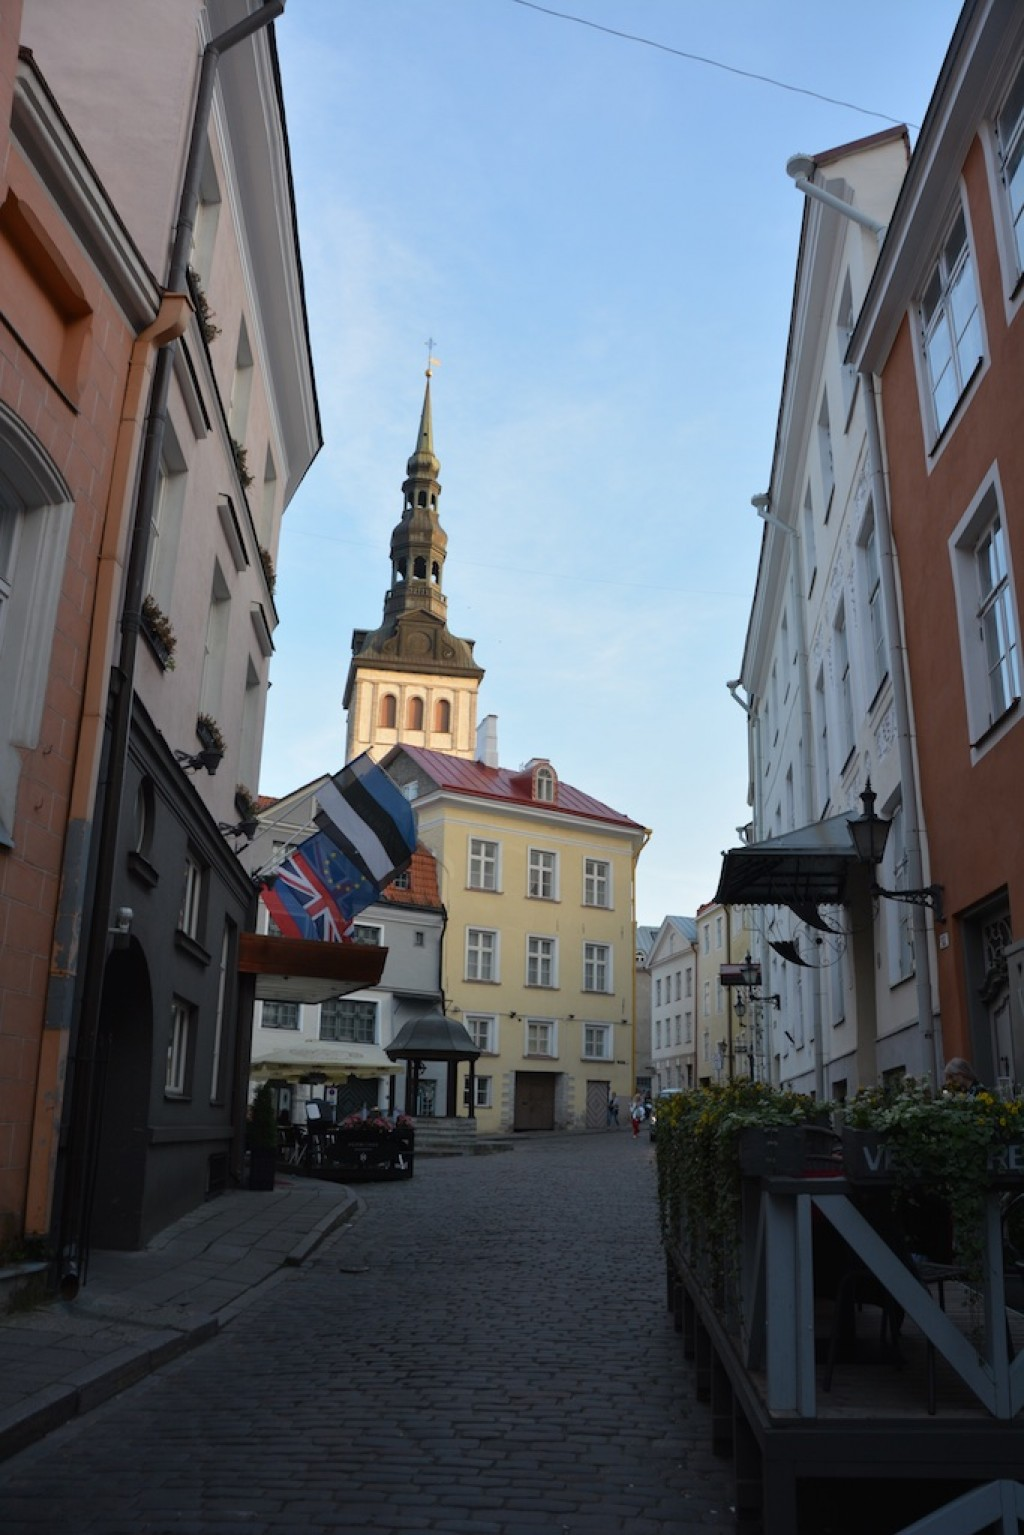 There is a lot to see and explore in Tallinn.  Beautiful old Russian churches, fascinating markets and old cobbled streets, and some great parks.